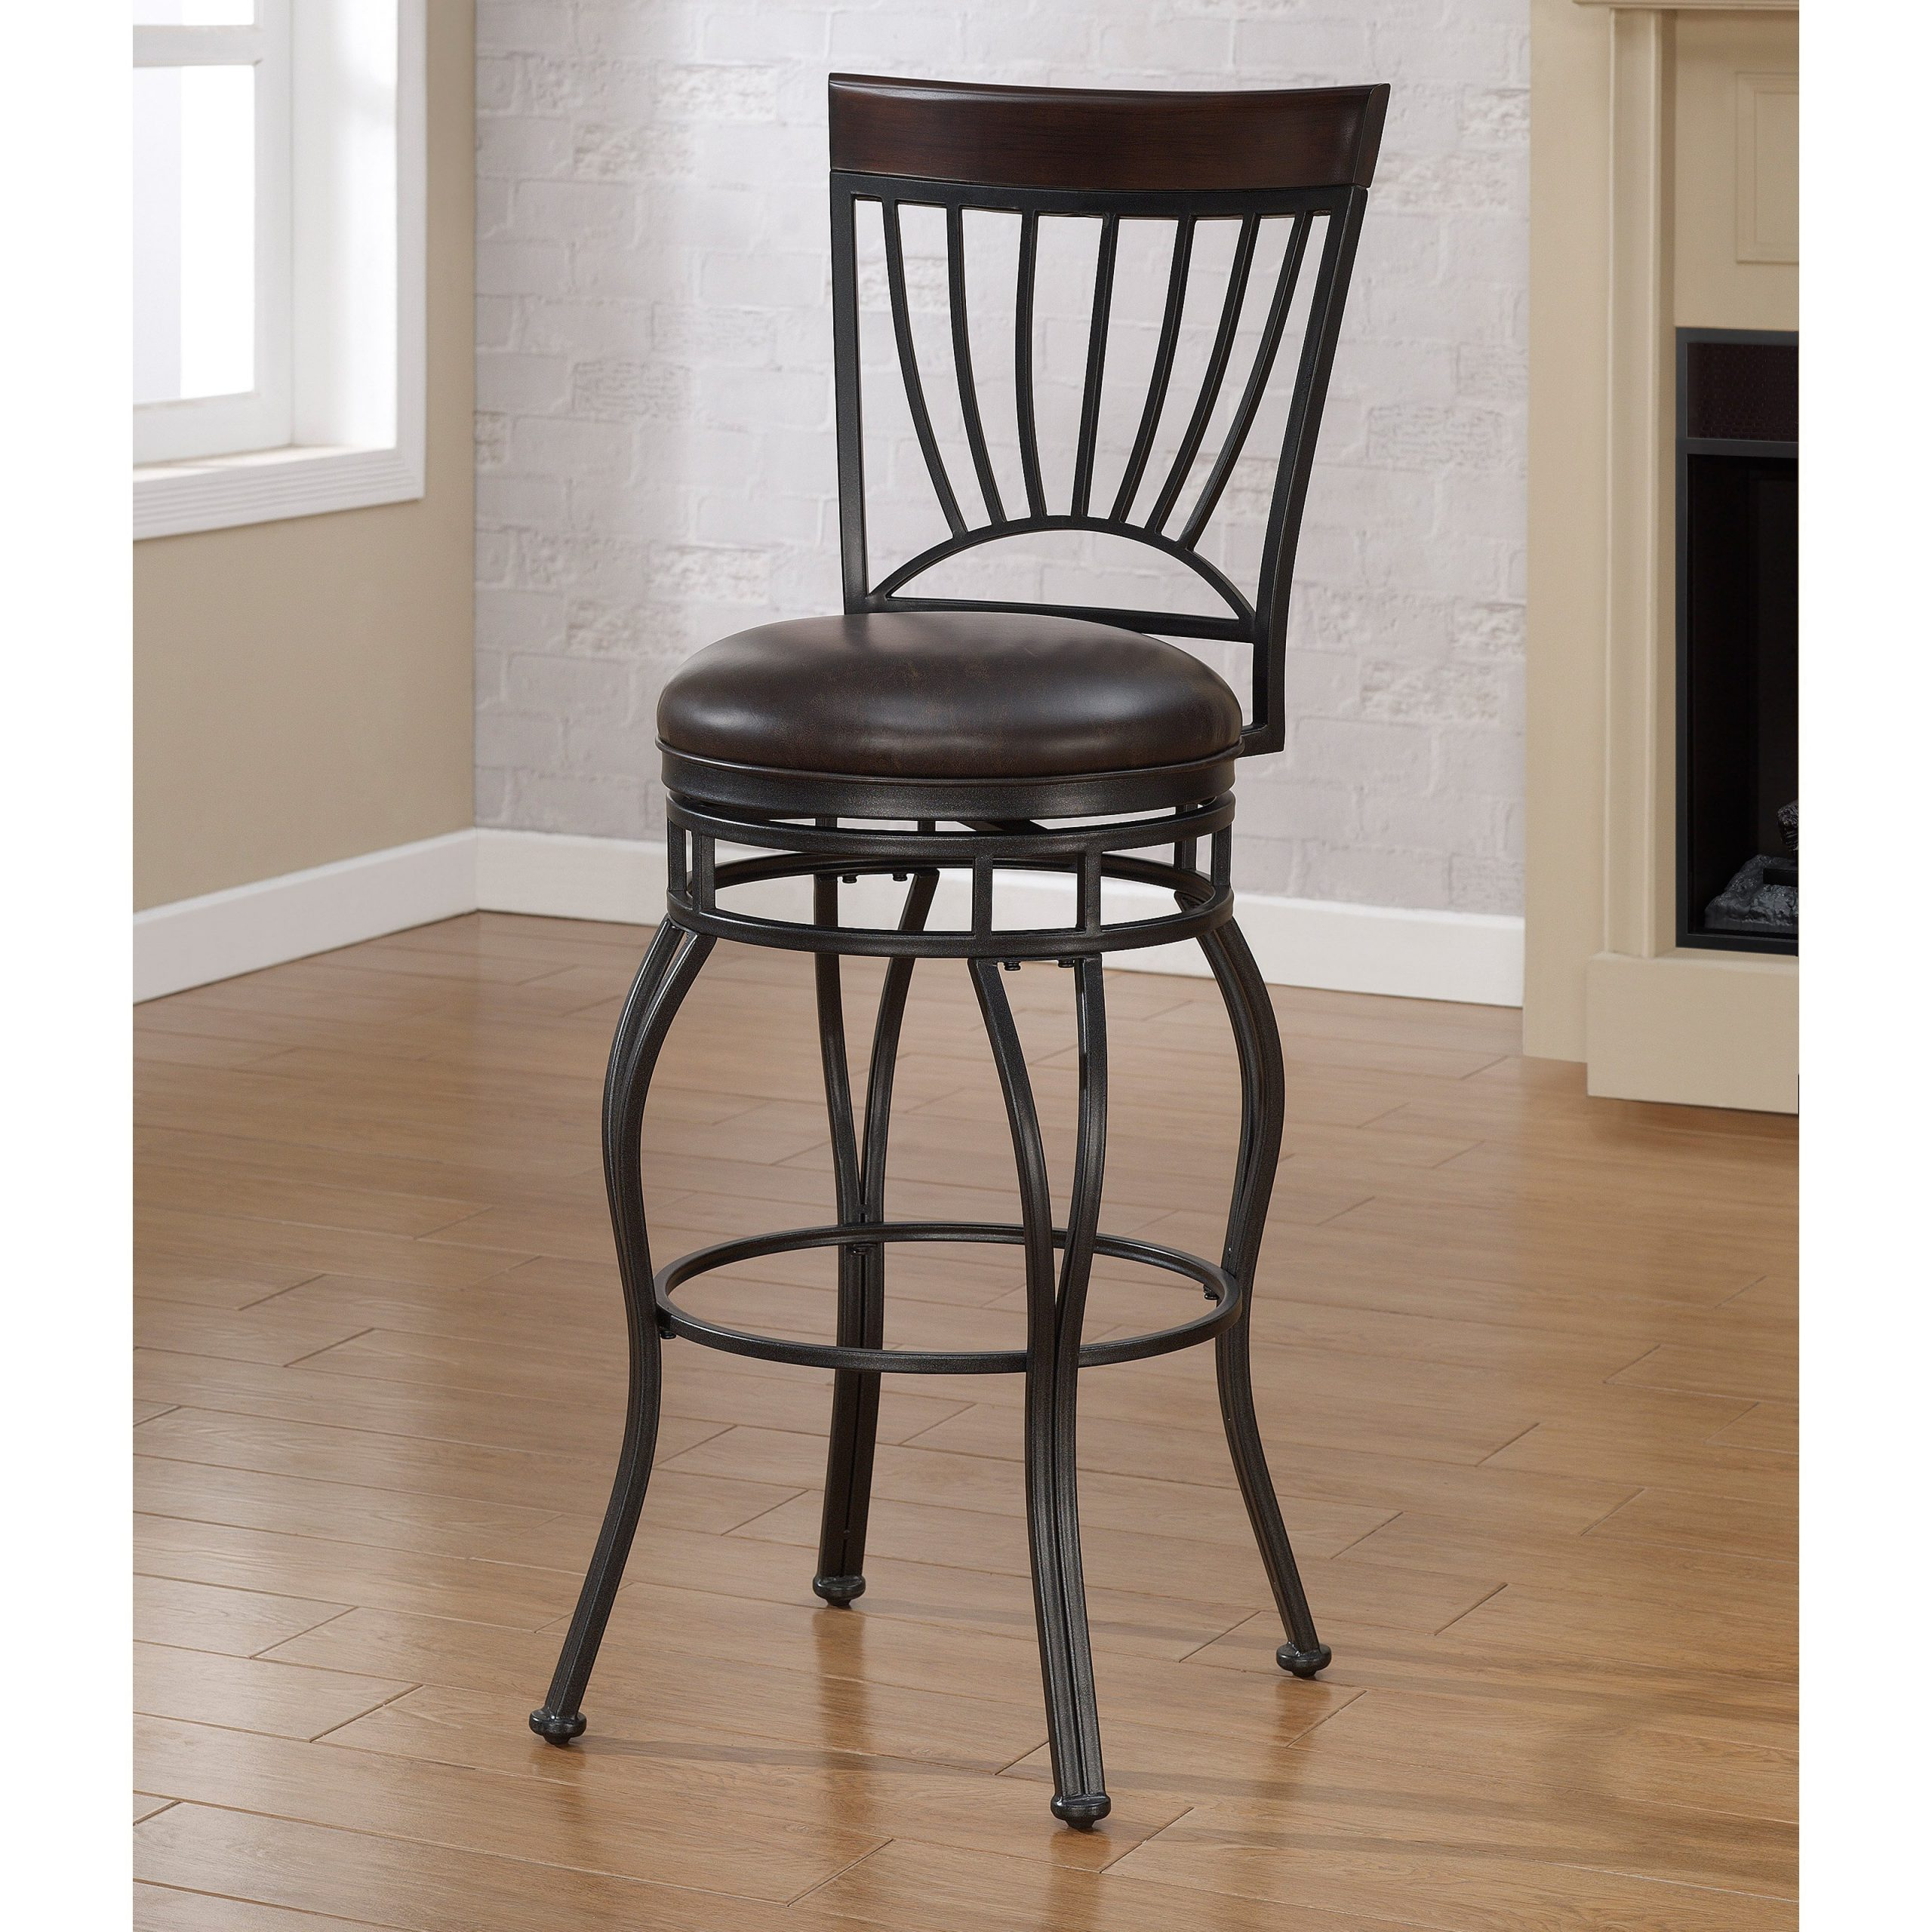 Most Recent Hearst Bar Tables Regarding Cast Stools Fascinating Pier One Wood Metal Stool Rustic (View 19 of 25)